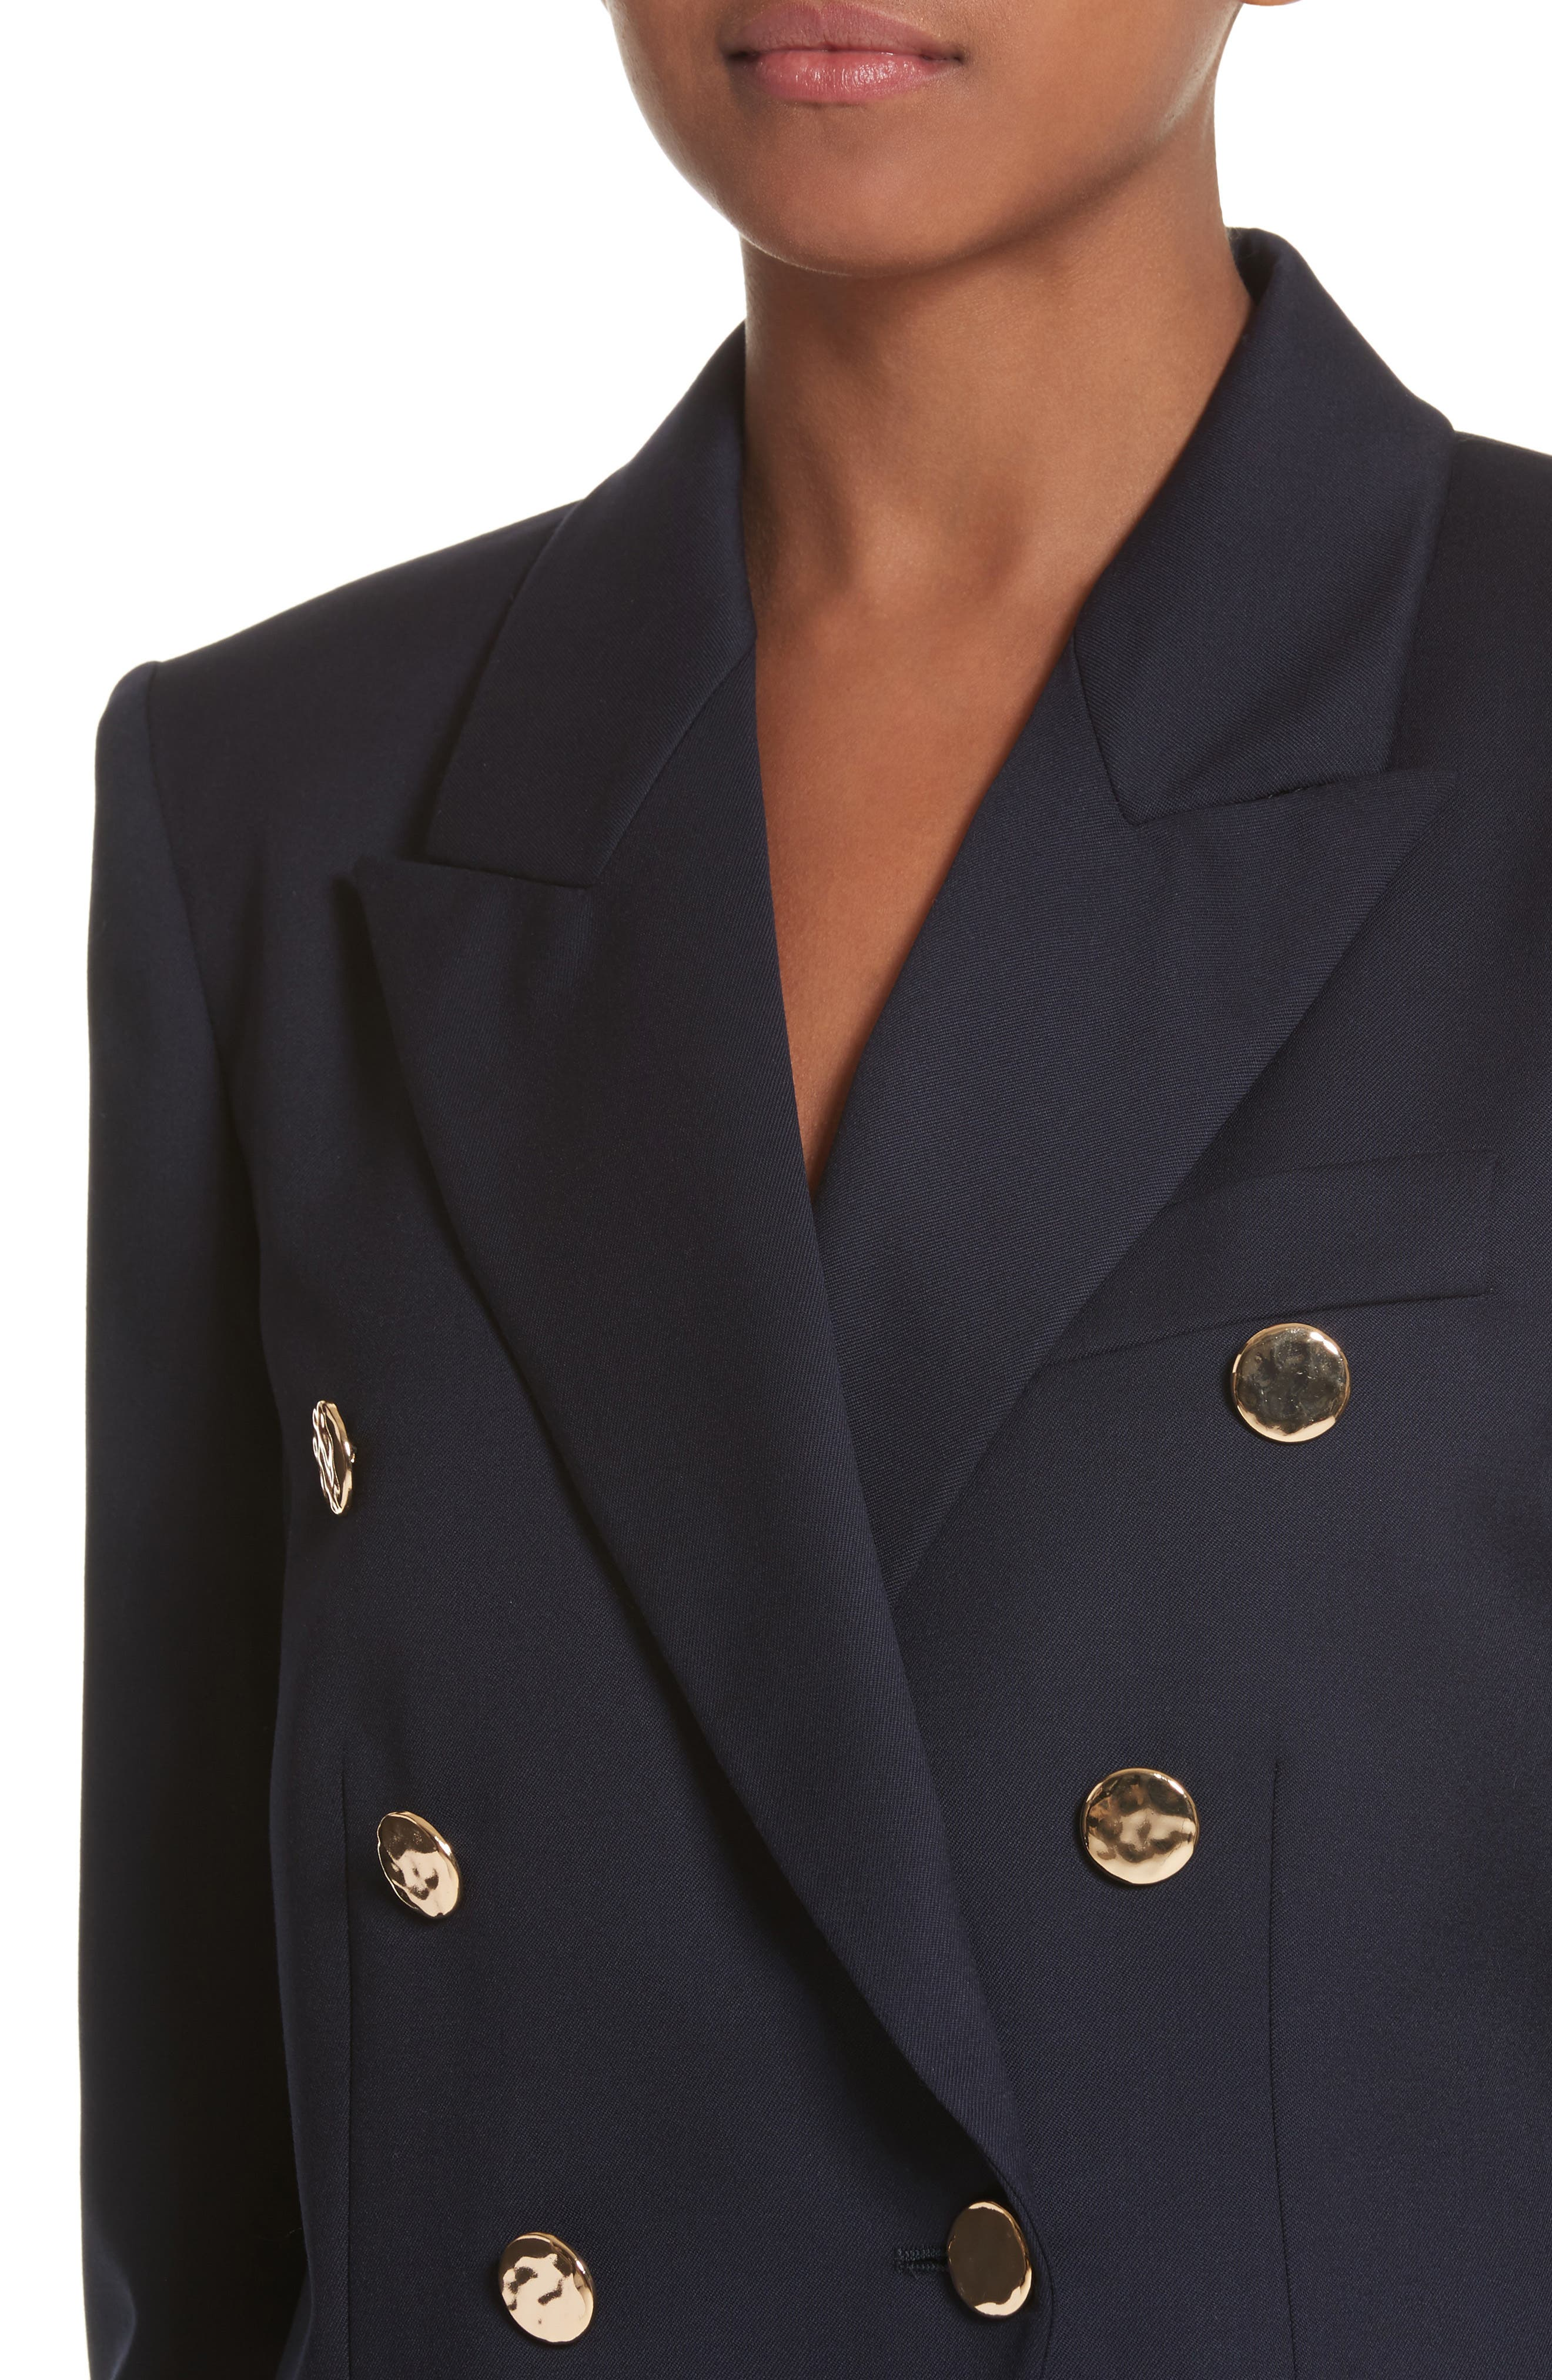 Double Breasted Wool Blazer,                             Alternate thumbnail 4, color,                             Navy